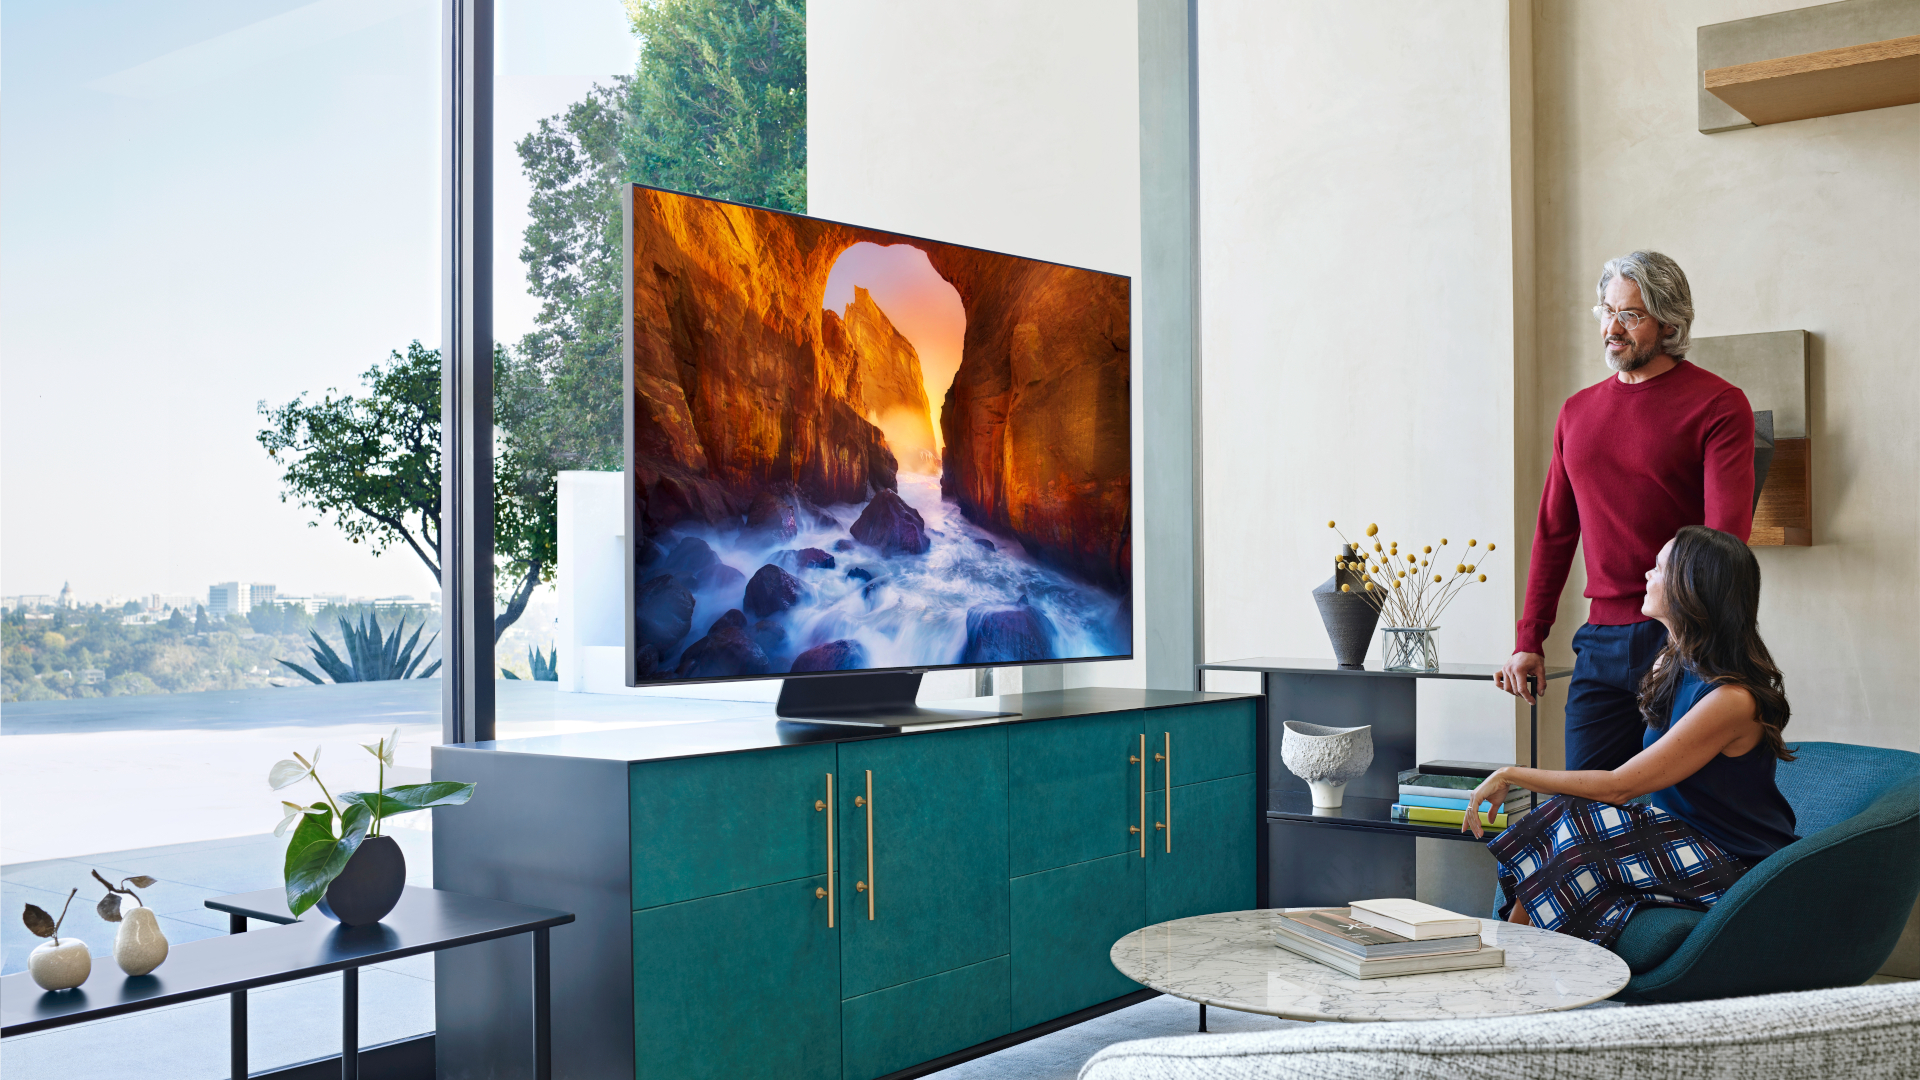 Buy A Tv Best Tv 2019 Here Are The Big Screen Tvs Worth Buying This Year